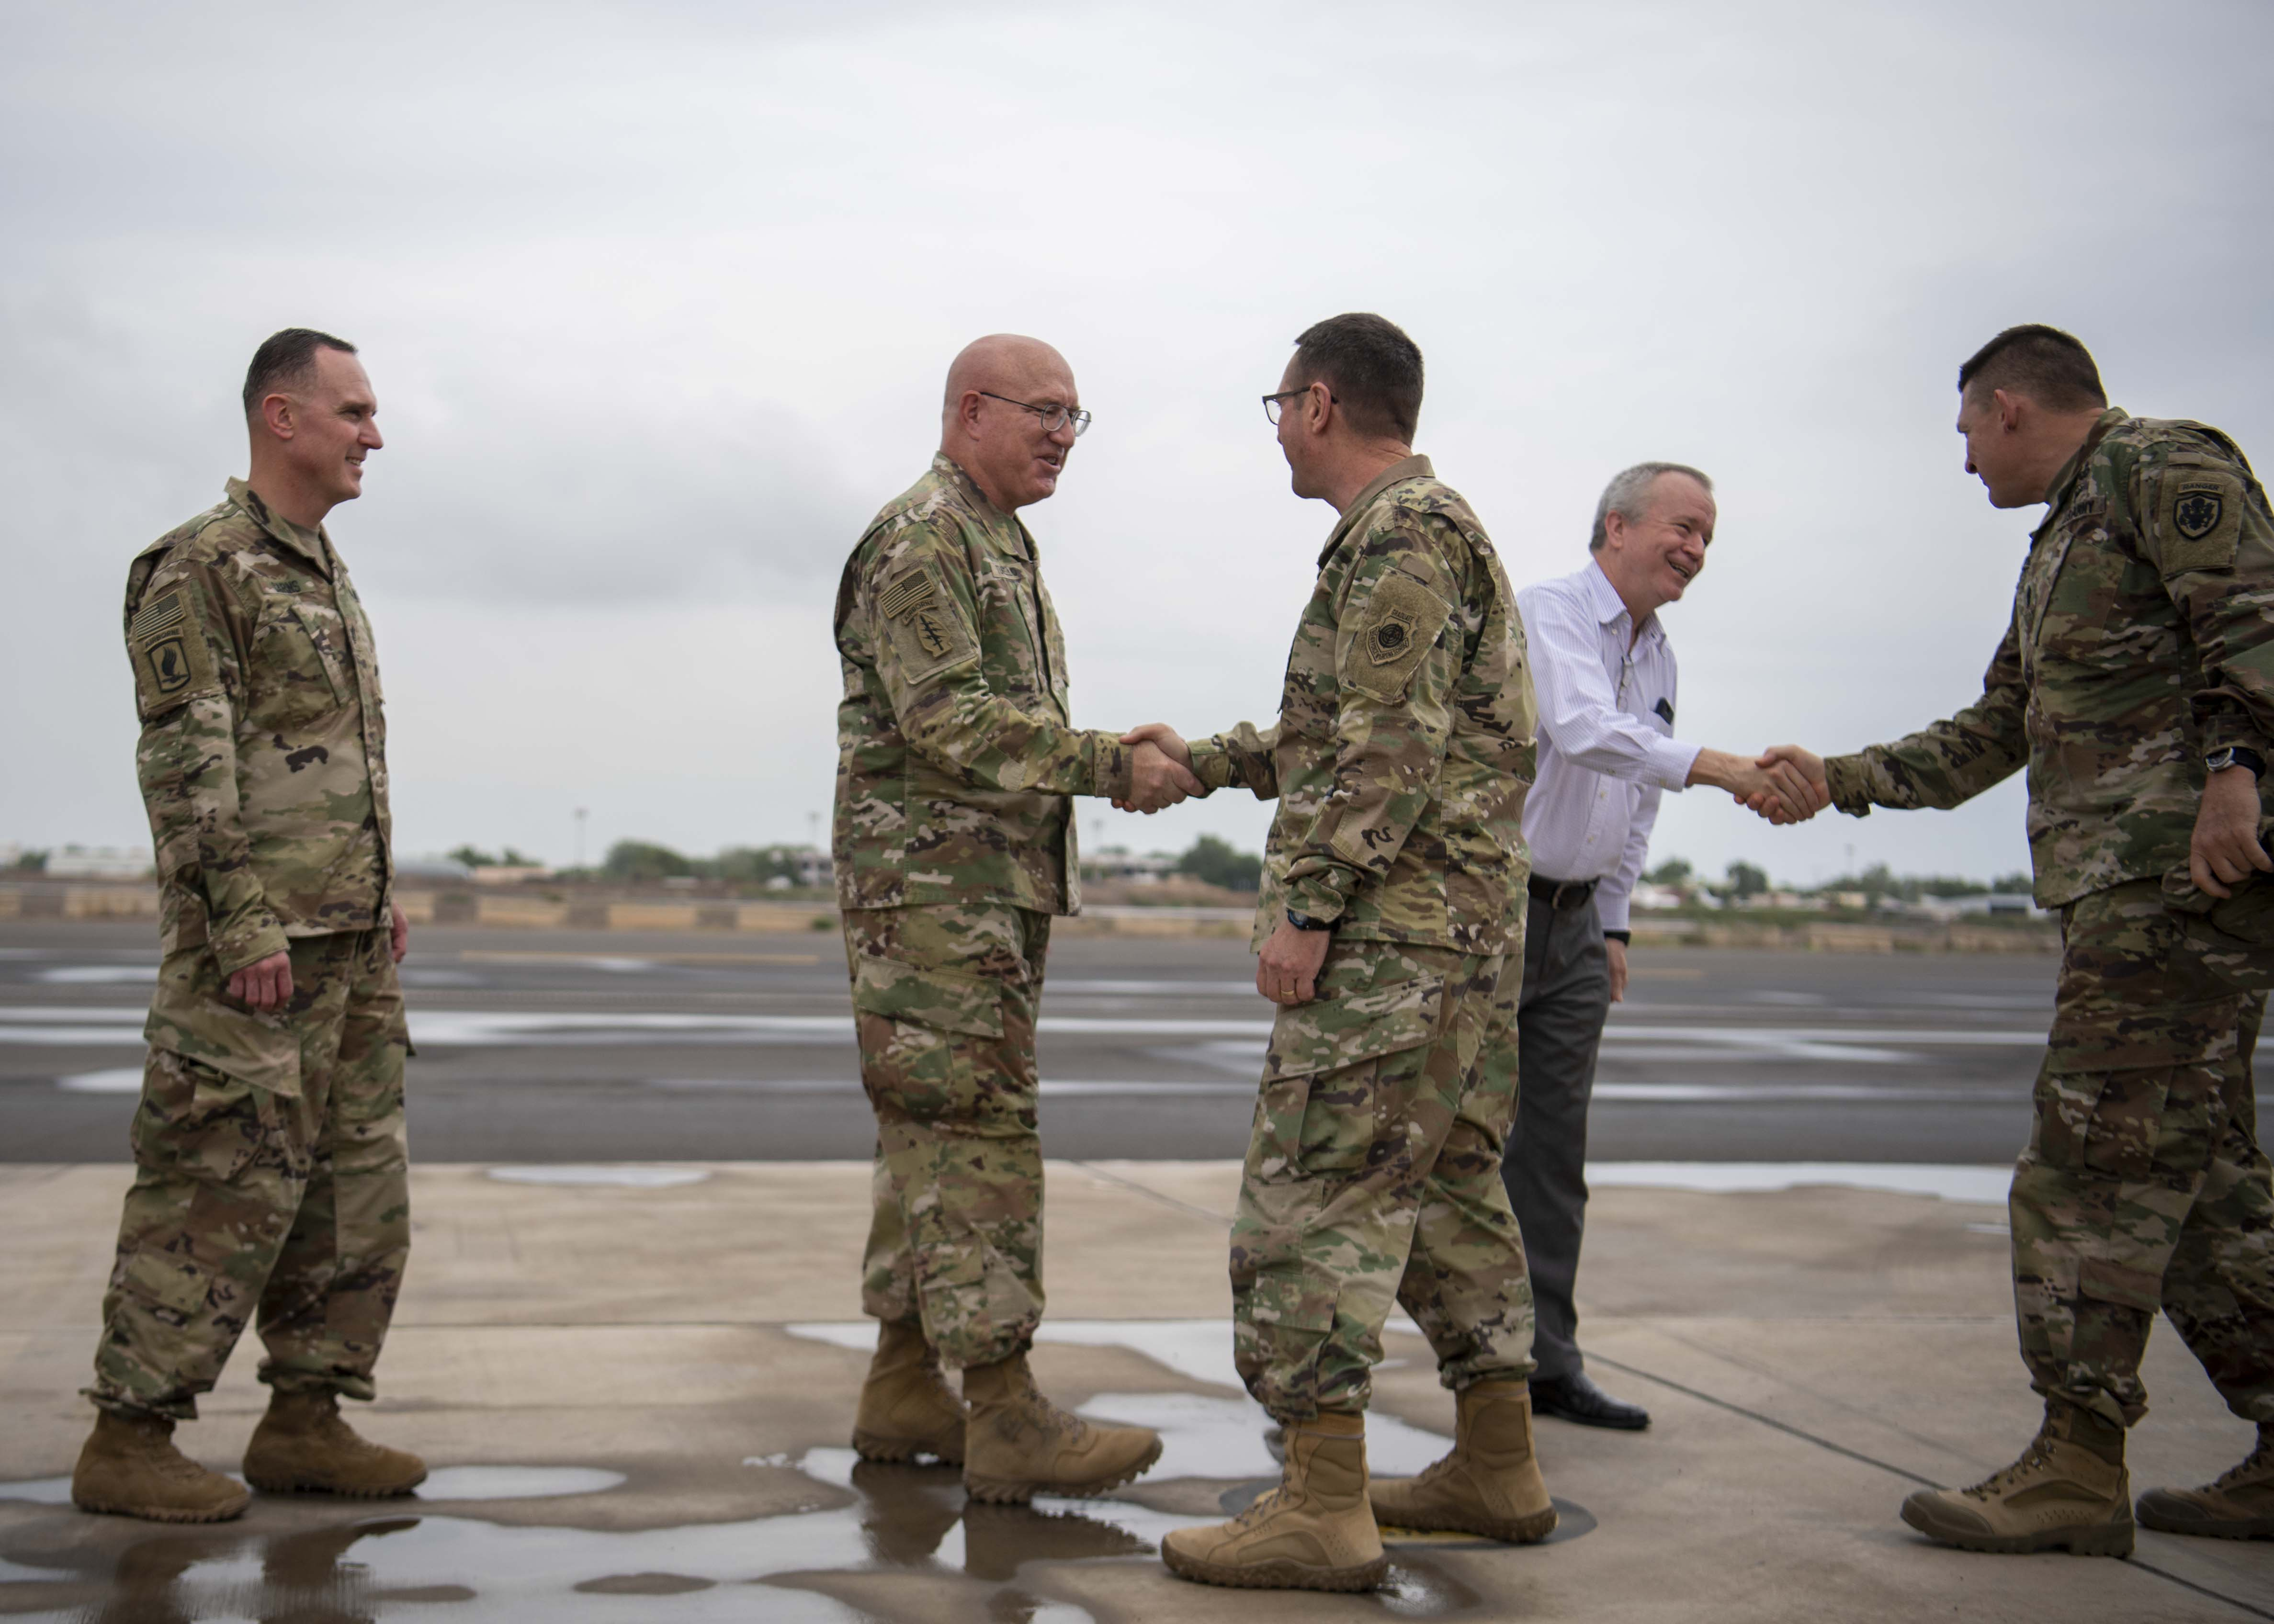 U.S. Army Maj. Gen. Michael Turello, commanding general, Combined Joint Task Force-Horn of Africa (CJTF-HOA), (center-left), greets U.S. Air Force Gen. Joseph Lengyel, chief, National Guard Bureau, (center-right), at Camp Lemonnier, Djibouti, Nov. 28, 2019. Lengyel visited Camp Lemonnier to meet with deployed National Guardsmen and other service members. (U.S. Air Force photo by Staff Sgt. J.D. Strong II)